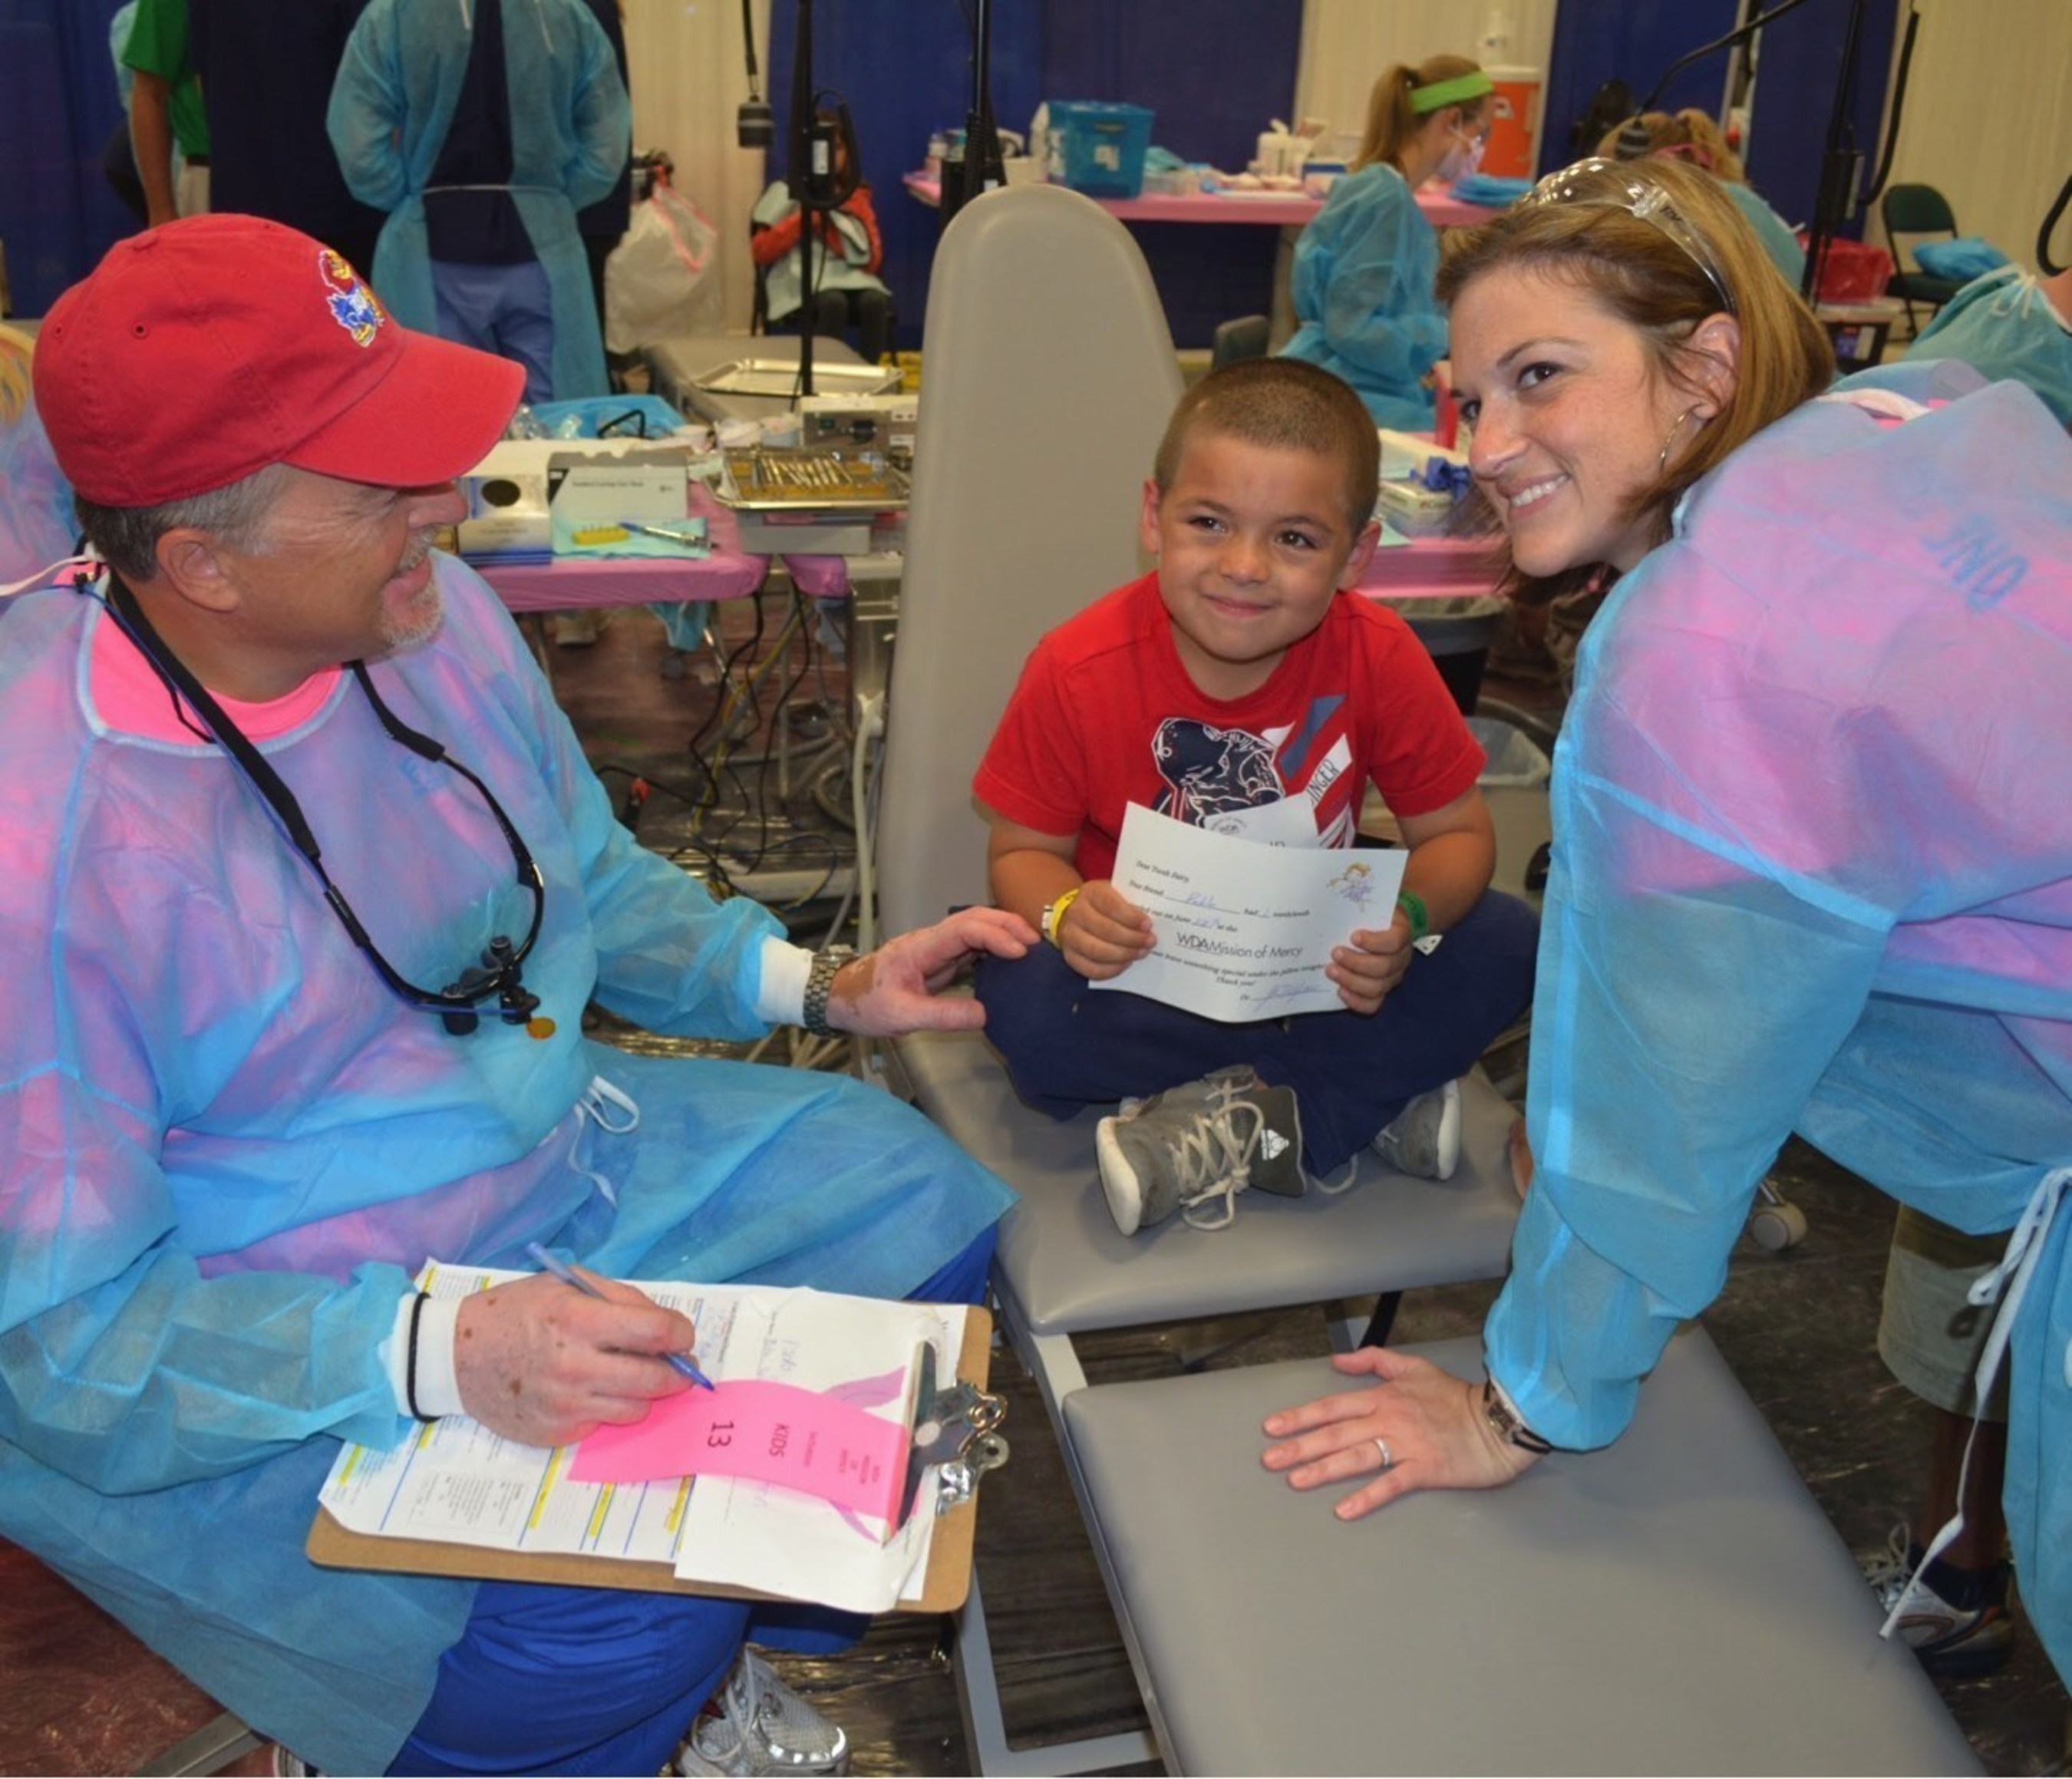 A smiling patient receives oral health care from volunteers at a Missions of Mercy event.